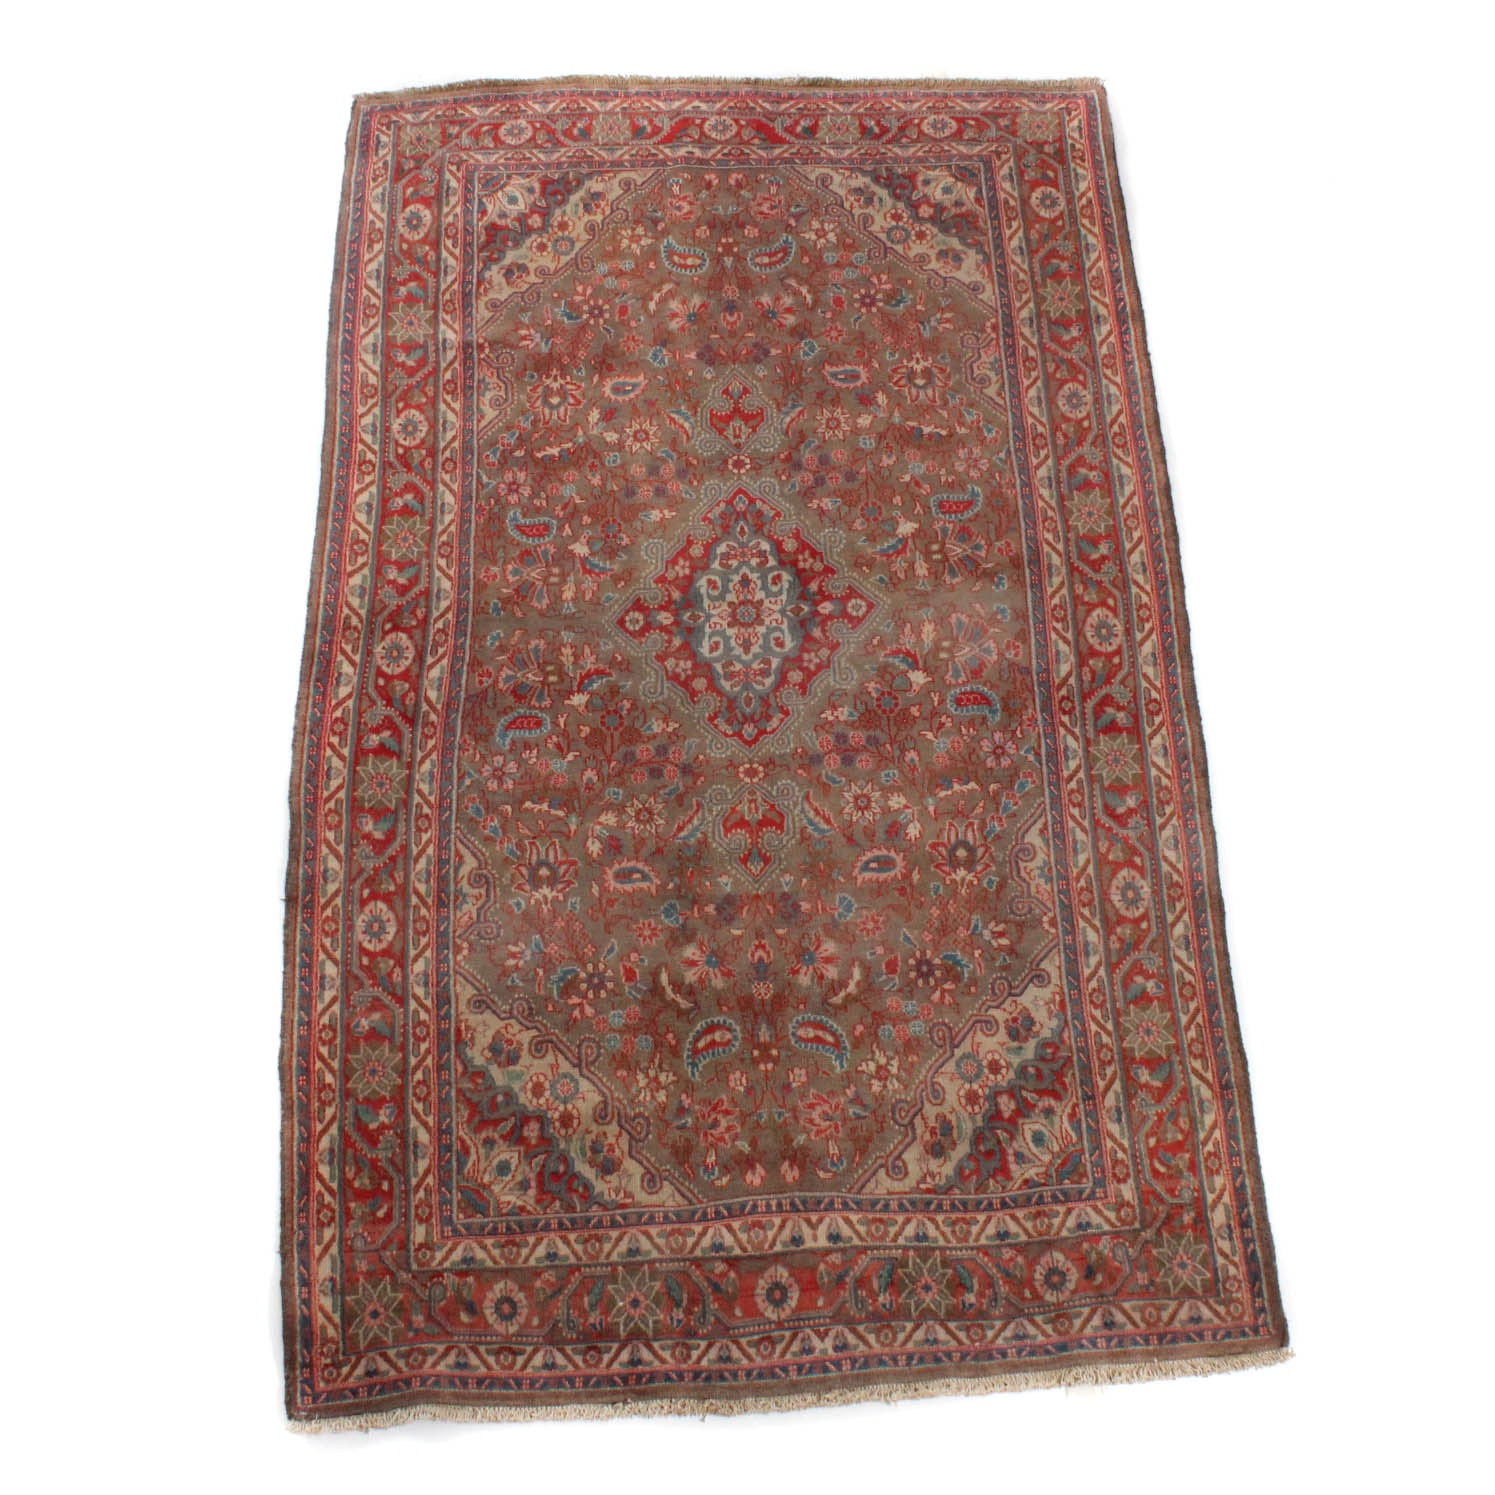 Vintage Hand-Knotted Persian Kashan Wool Area Rug